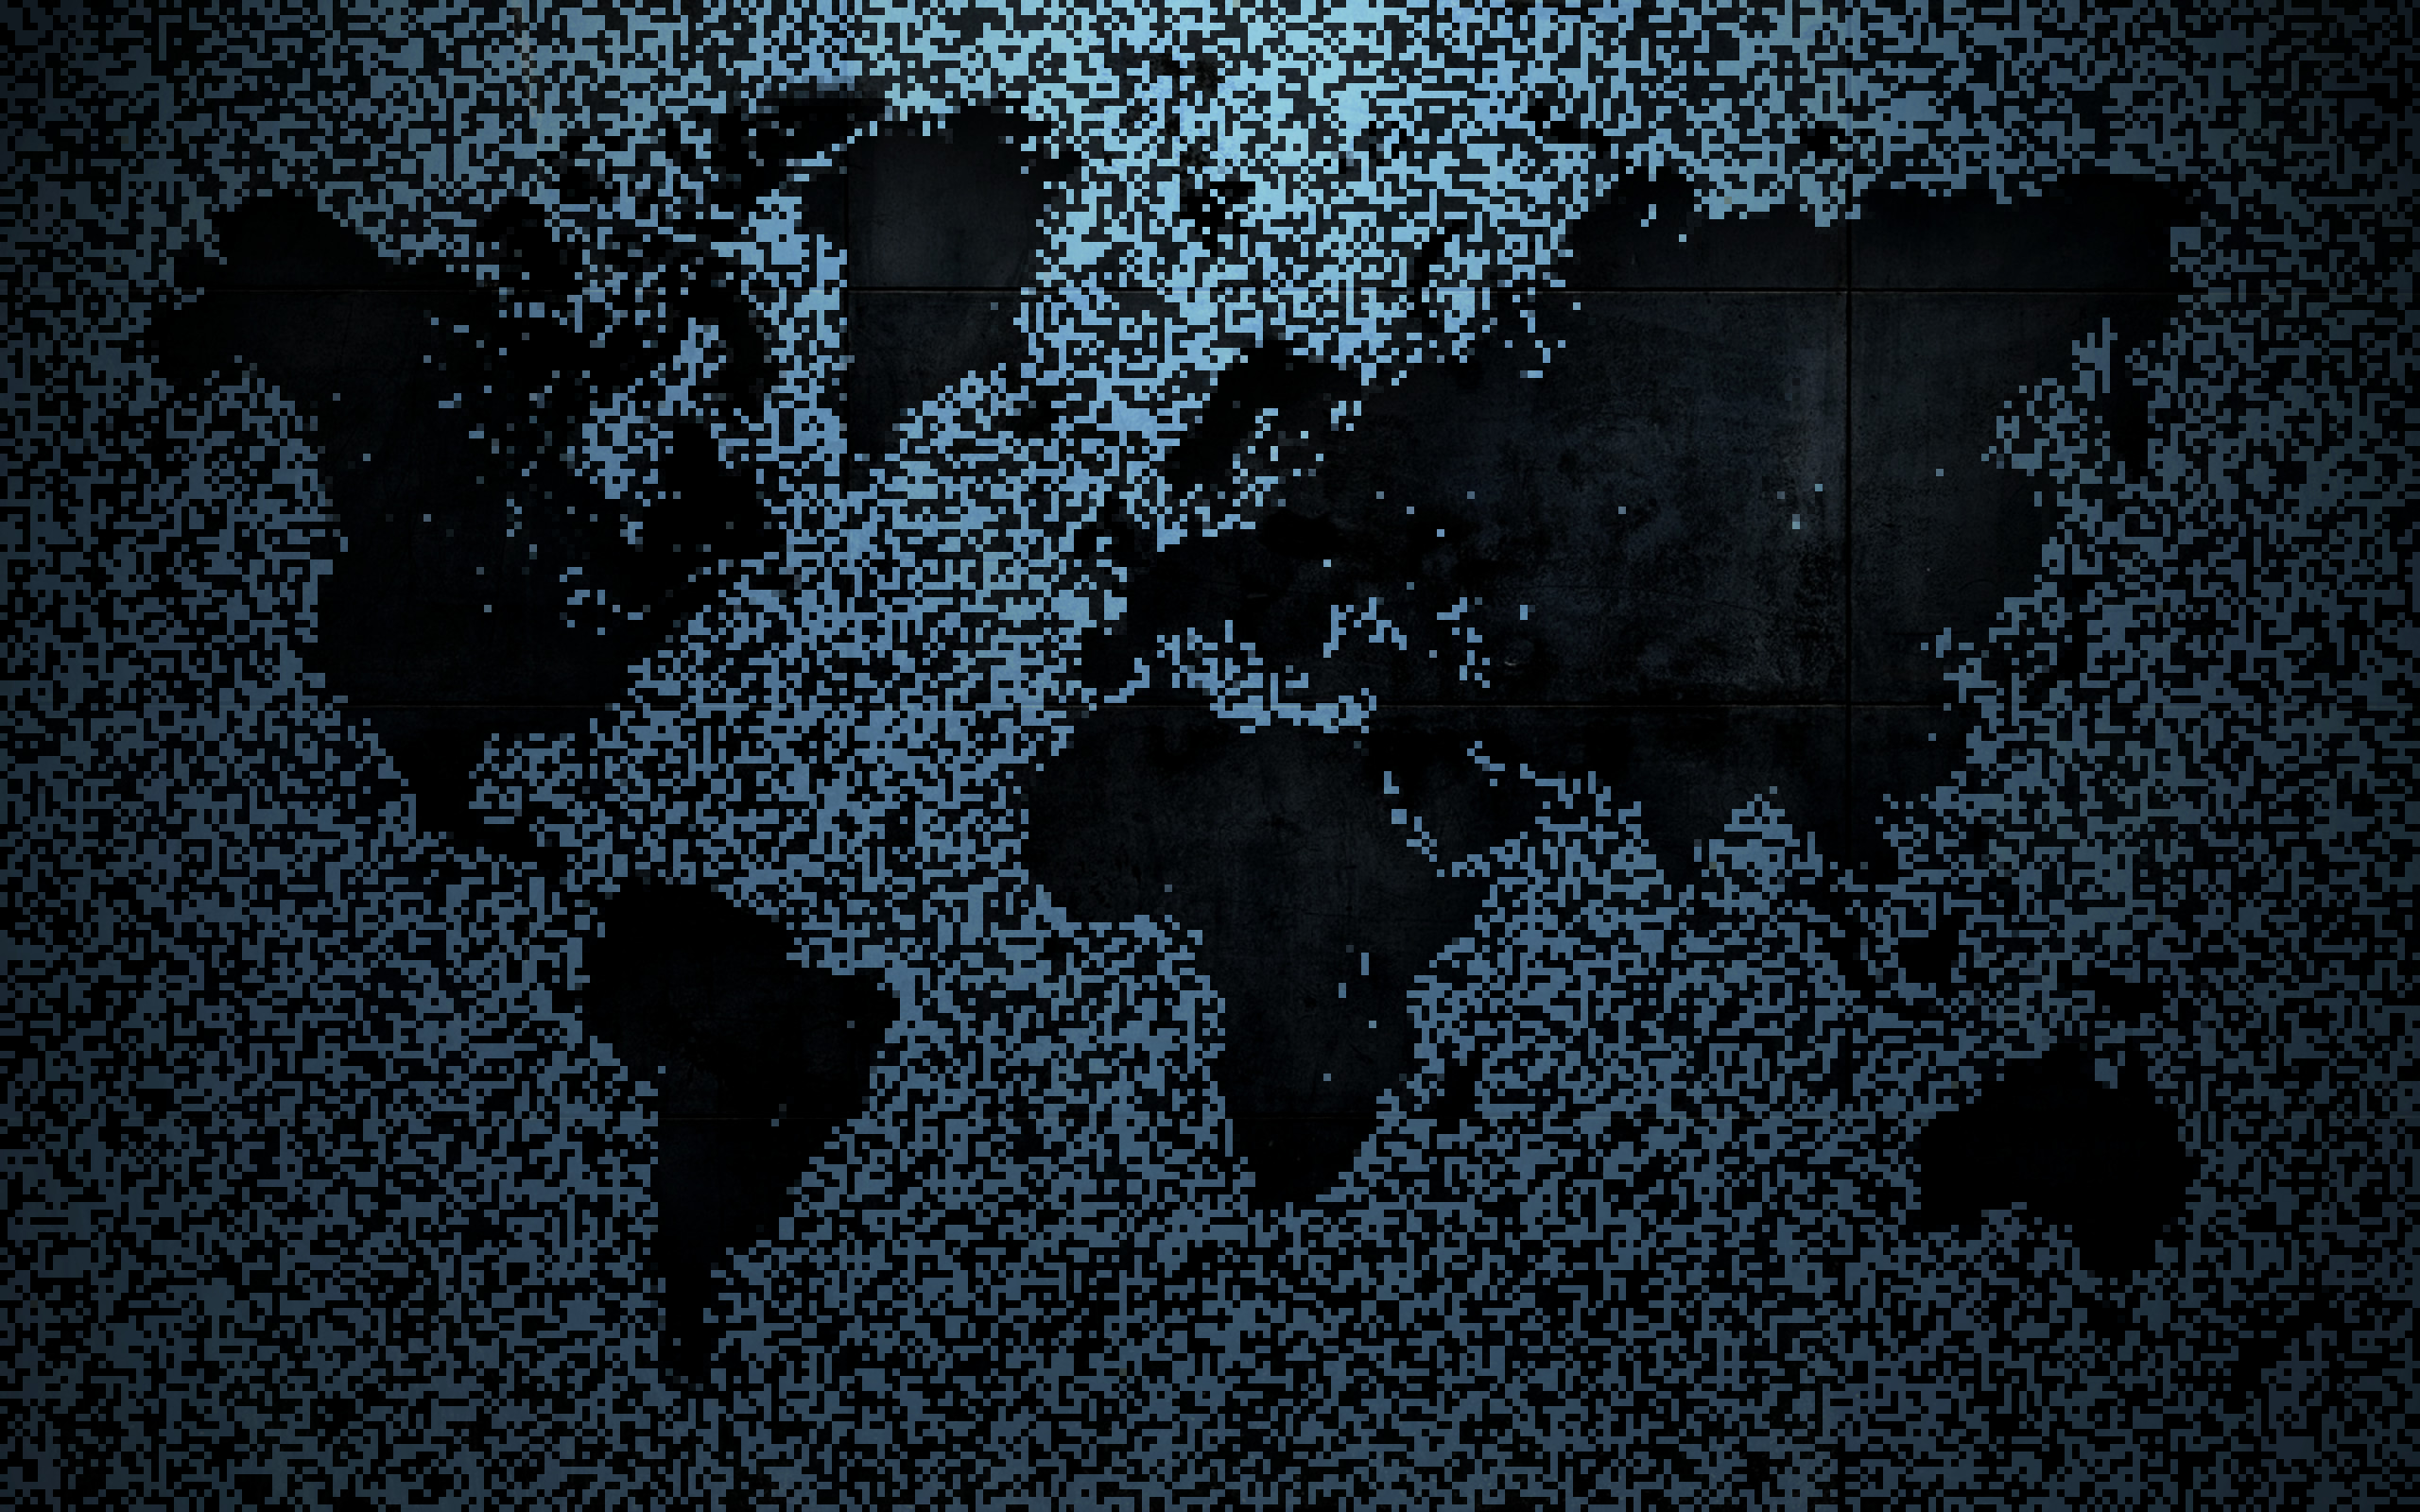 2560x1600 Download World Map HD:1313-EBX Wallpapers, BsnSCB.com